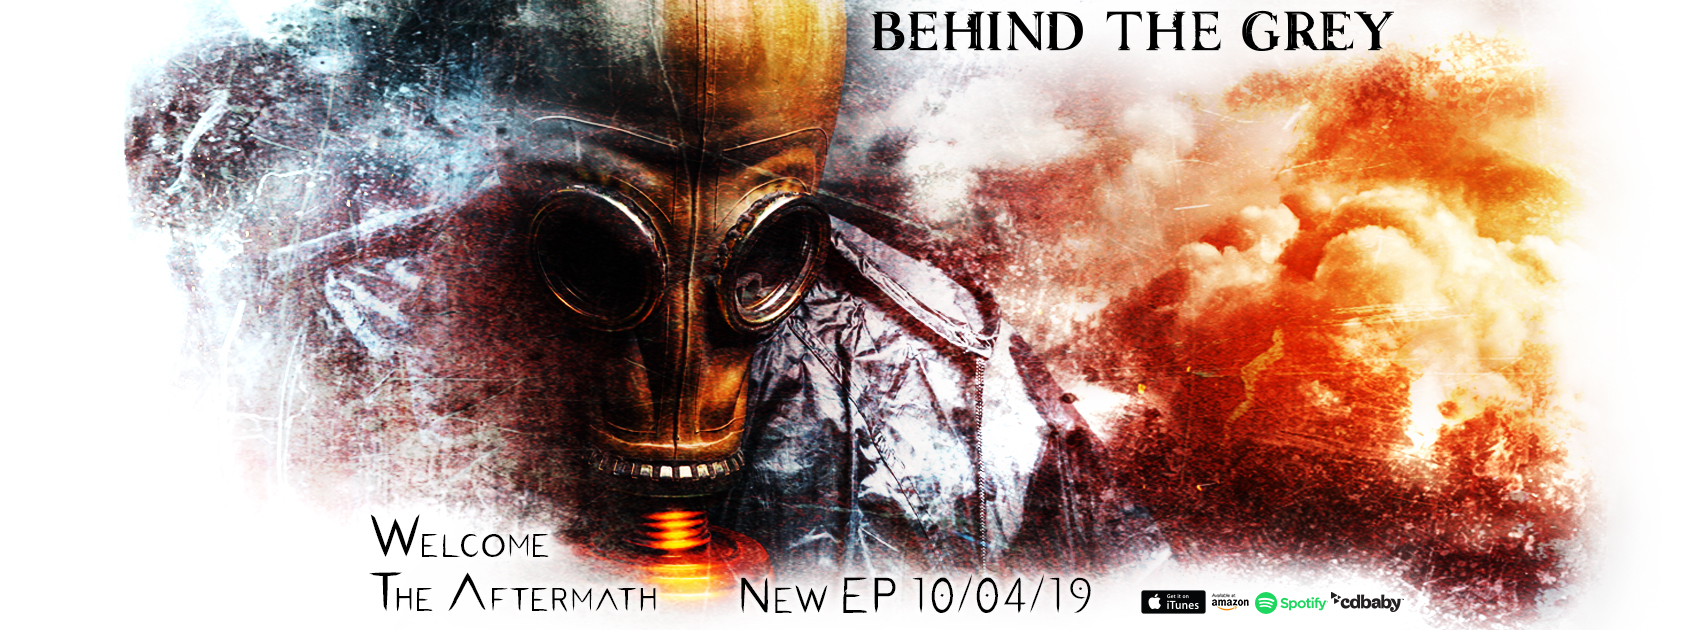 BTG-Aftermath-FB-Release_Hype-Cover01.jpg